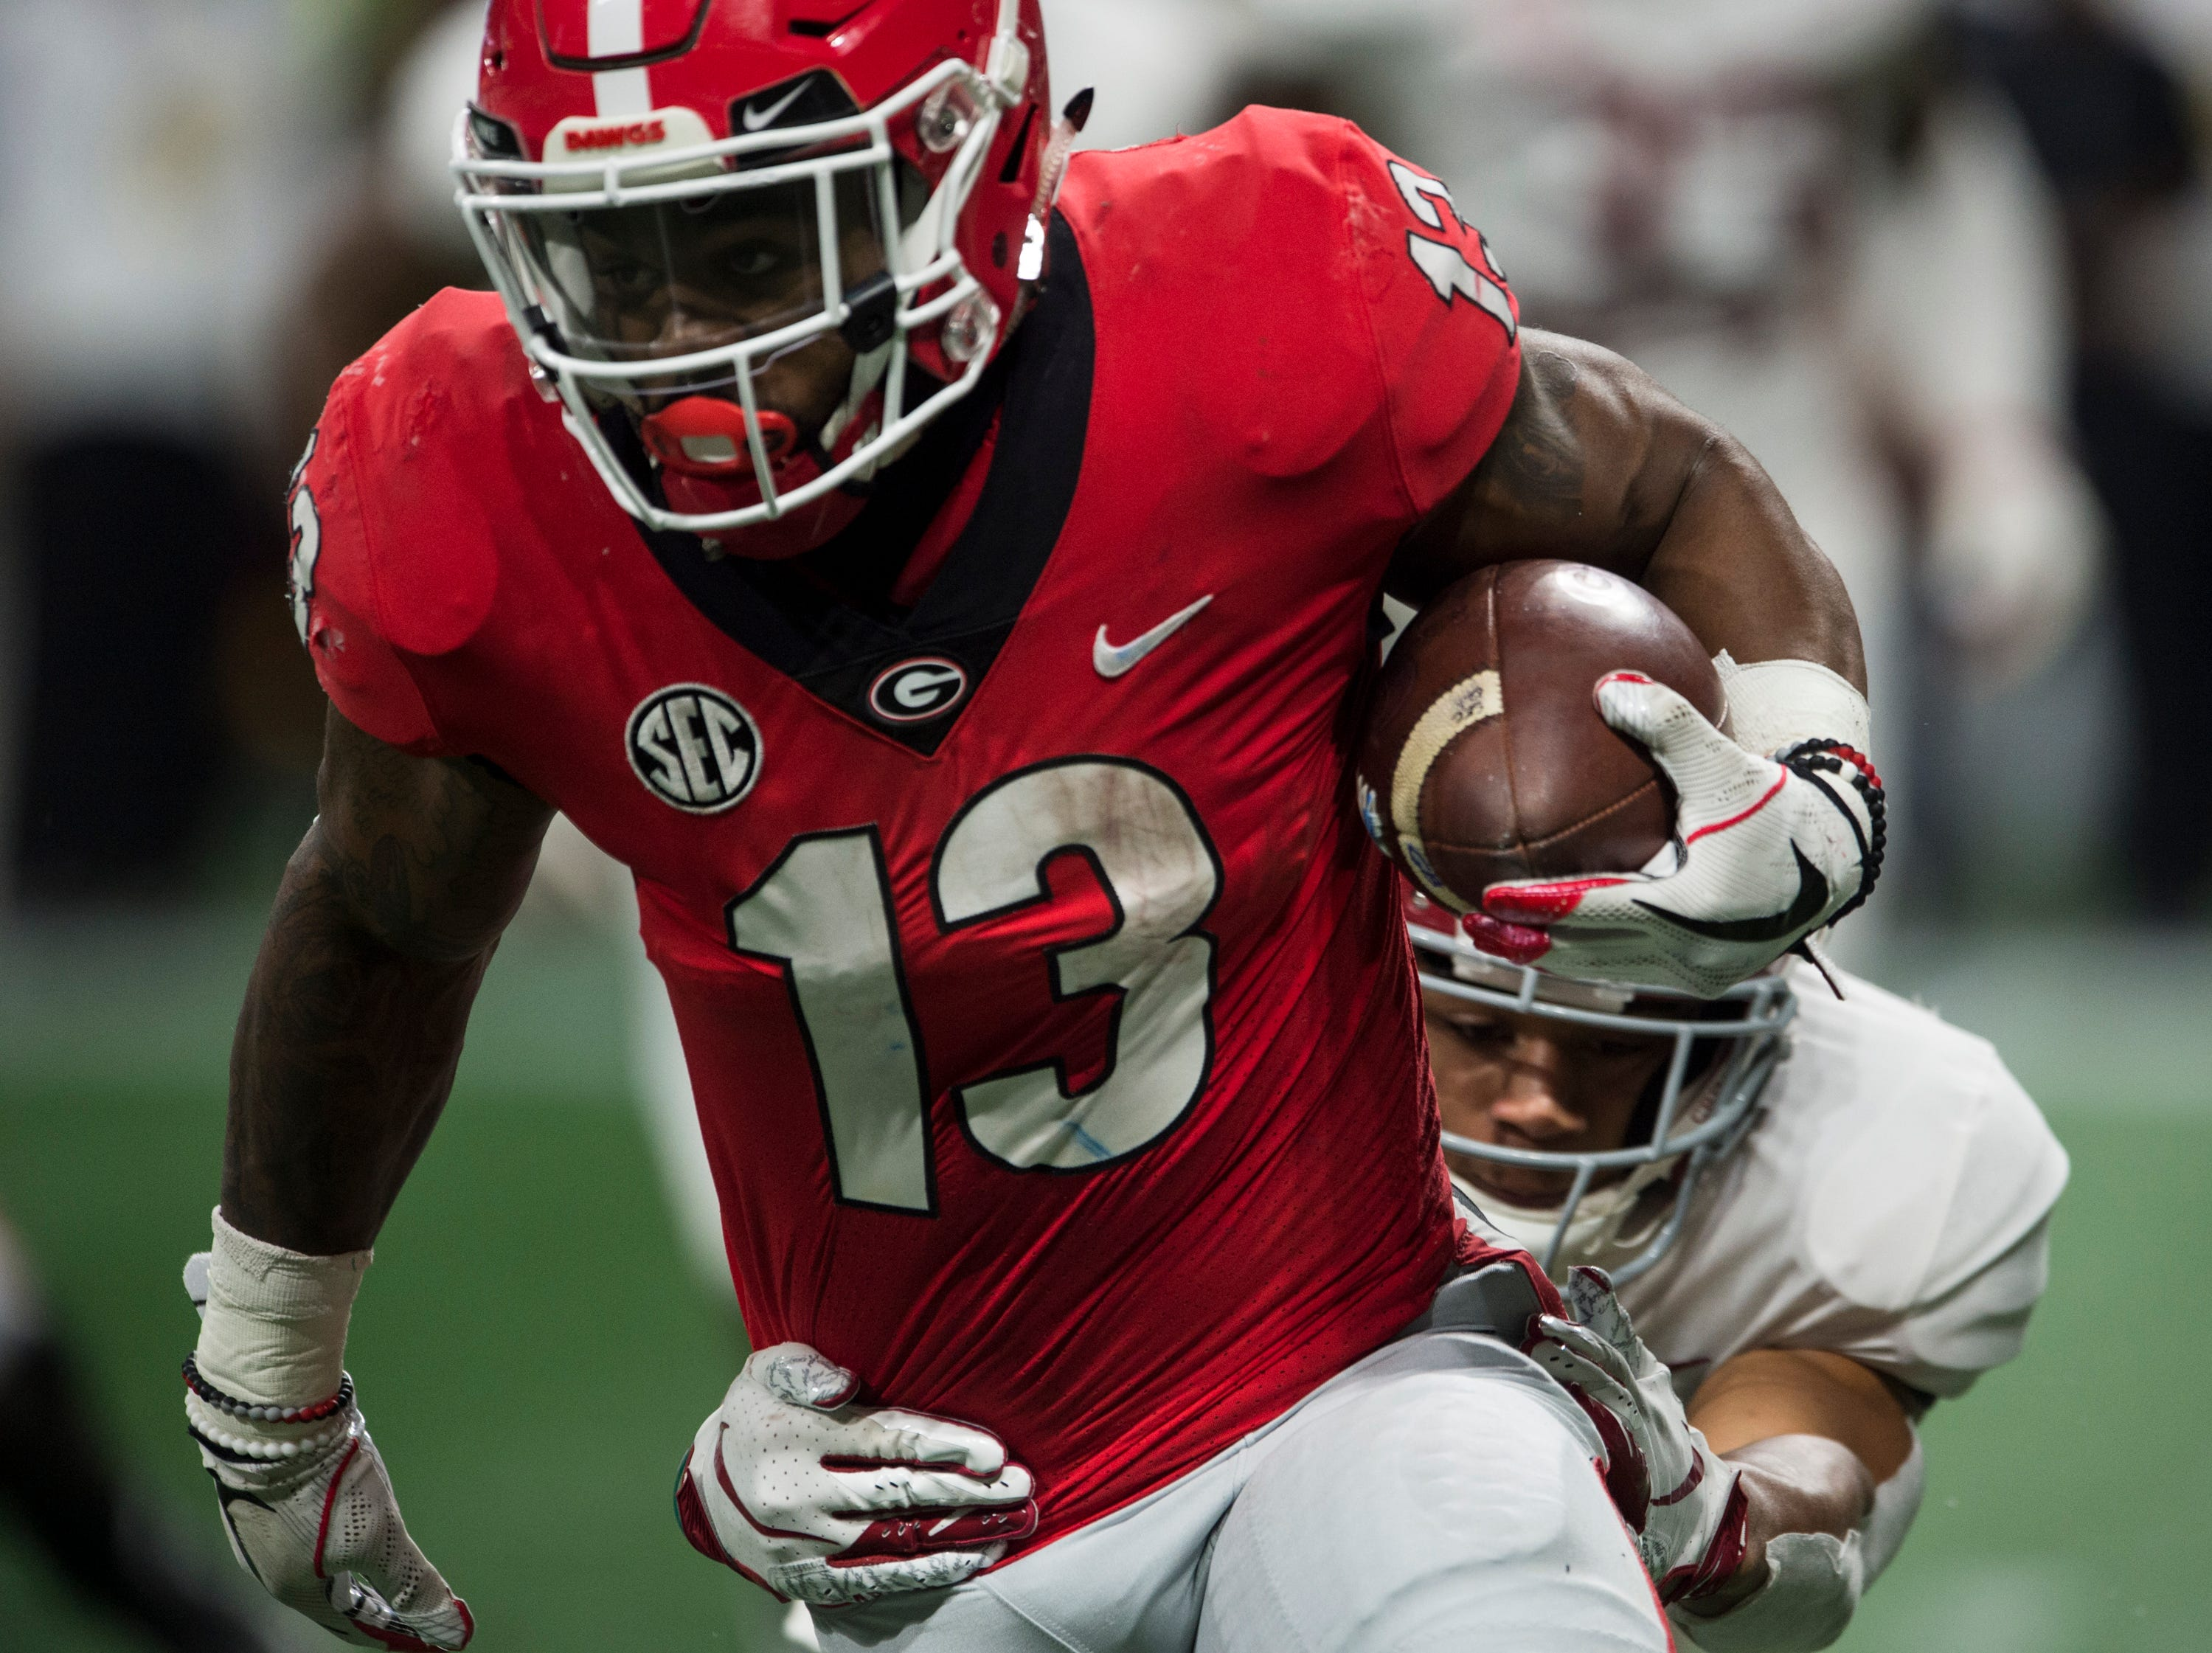 Georgia running back Elijah Holyfield (13) runs the ball against Alabama during the SEC Championship game at Mercedes-Benz Stadium in Atlanta, Ga., on Saturday Dec. 1, 2018. Alabama defeated Georgia 35-28.